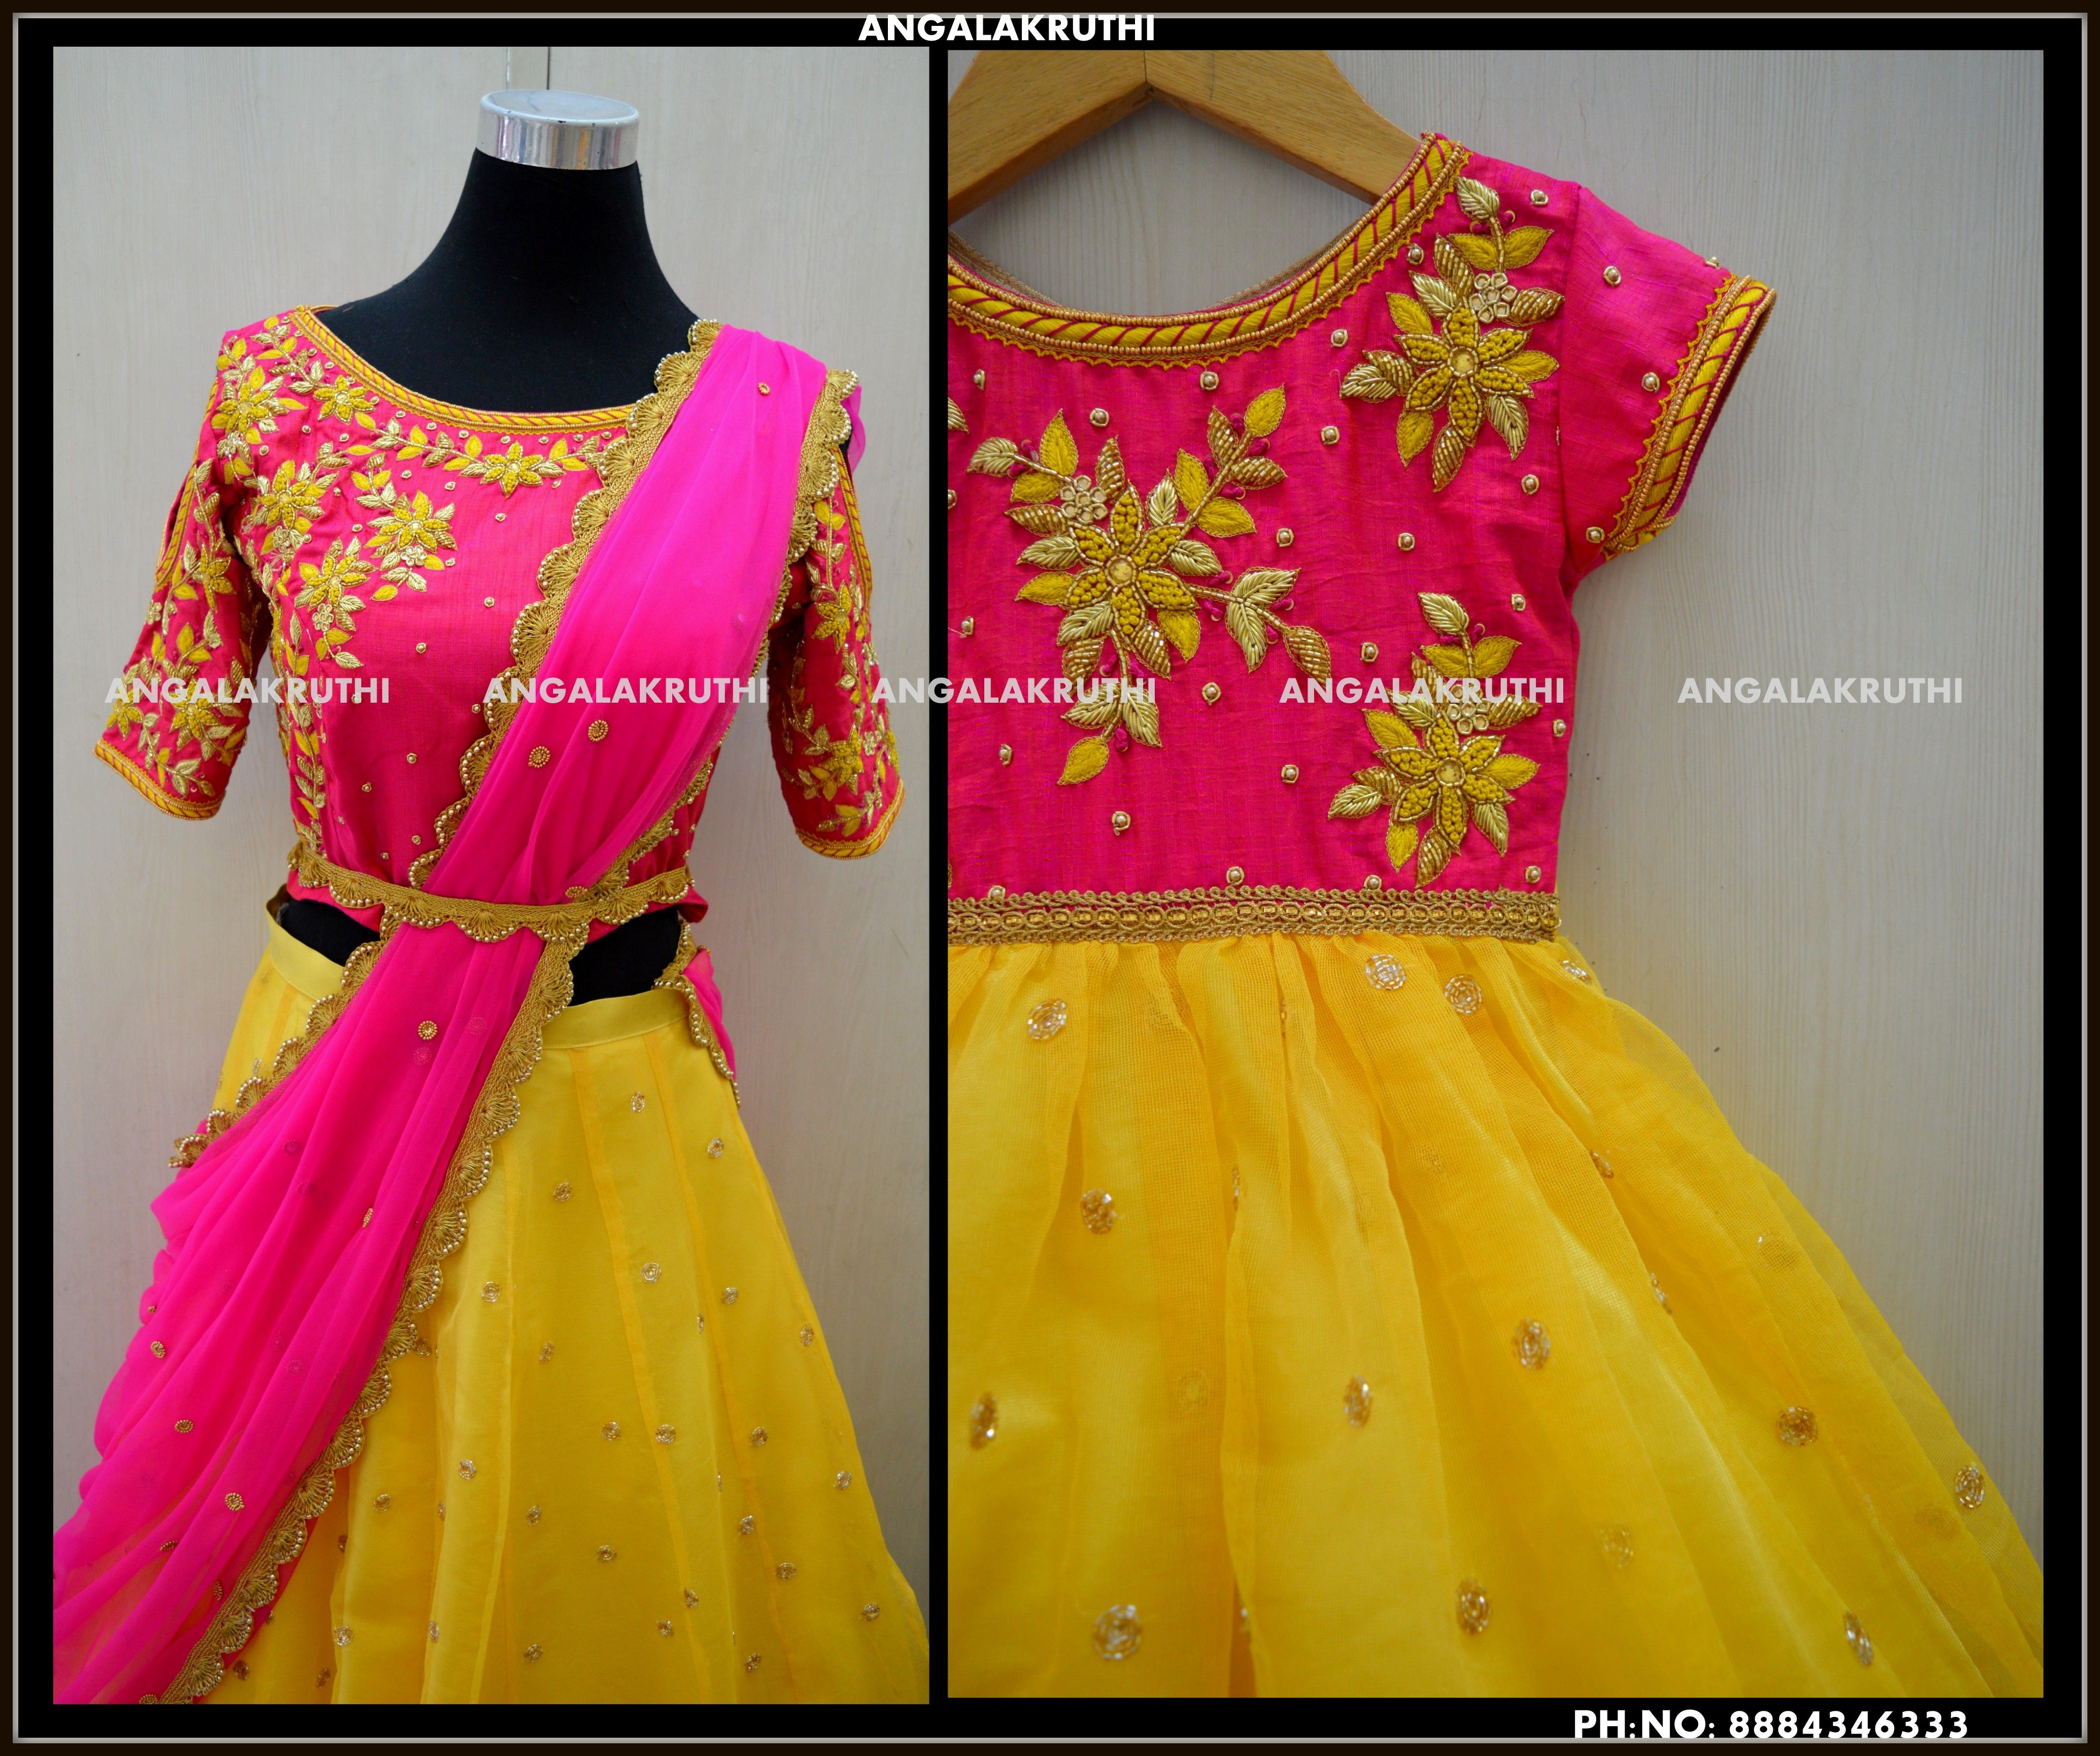 756589dee1 Matching dress designs by Angalakruthi bangalore | Mom n Me Designs ...